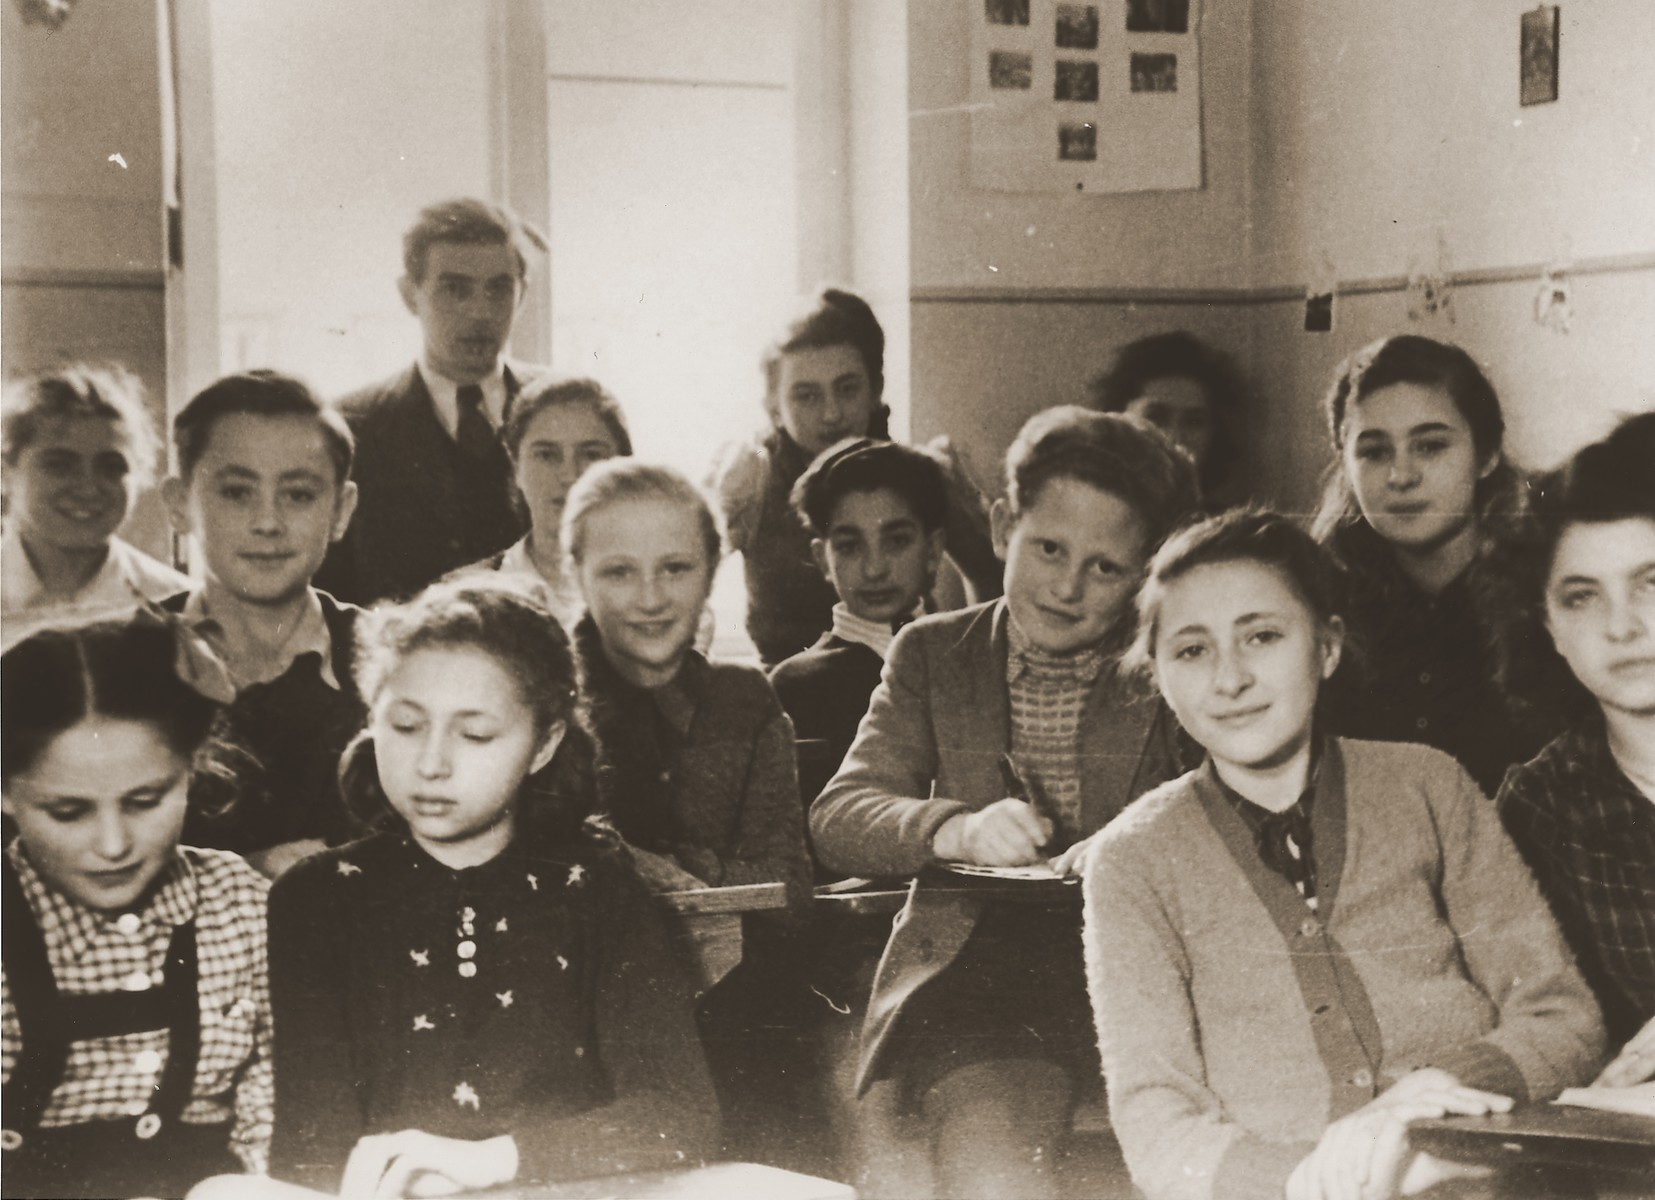 "A classroom of students listens to a lecture in Yiddish by their teacher Chaim Szmerick in the Stuttgart DP camp.  Among those pictured are: Lova Warszawczyk (left, second row, now Larry Warick), David Hoffman (second row, second from right),  ? Hoberman (first row, second from right), Hadasa Gassenbauer (first row on left), and Bronia Graudens (back, left corner).  One image from the Stuttgart Jewish DP camp album entitled, ""Jidiszer D.P. Center UNRRA--P.C.IRO in Stuttgart,"" compiled and photographed by Alexander Fiedel and dedicated to Moses Kornberg, head of the commissary."